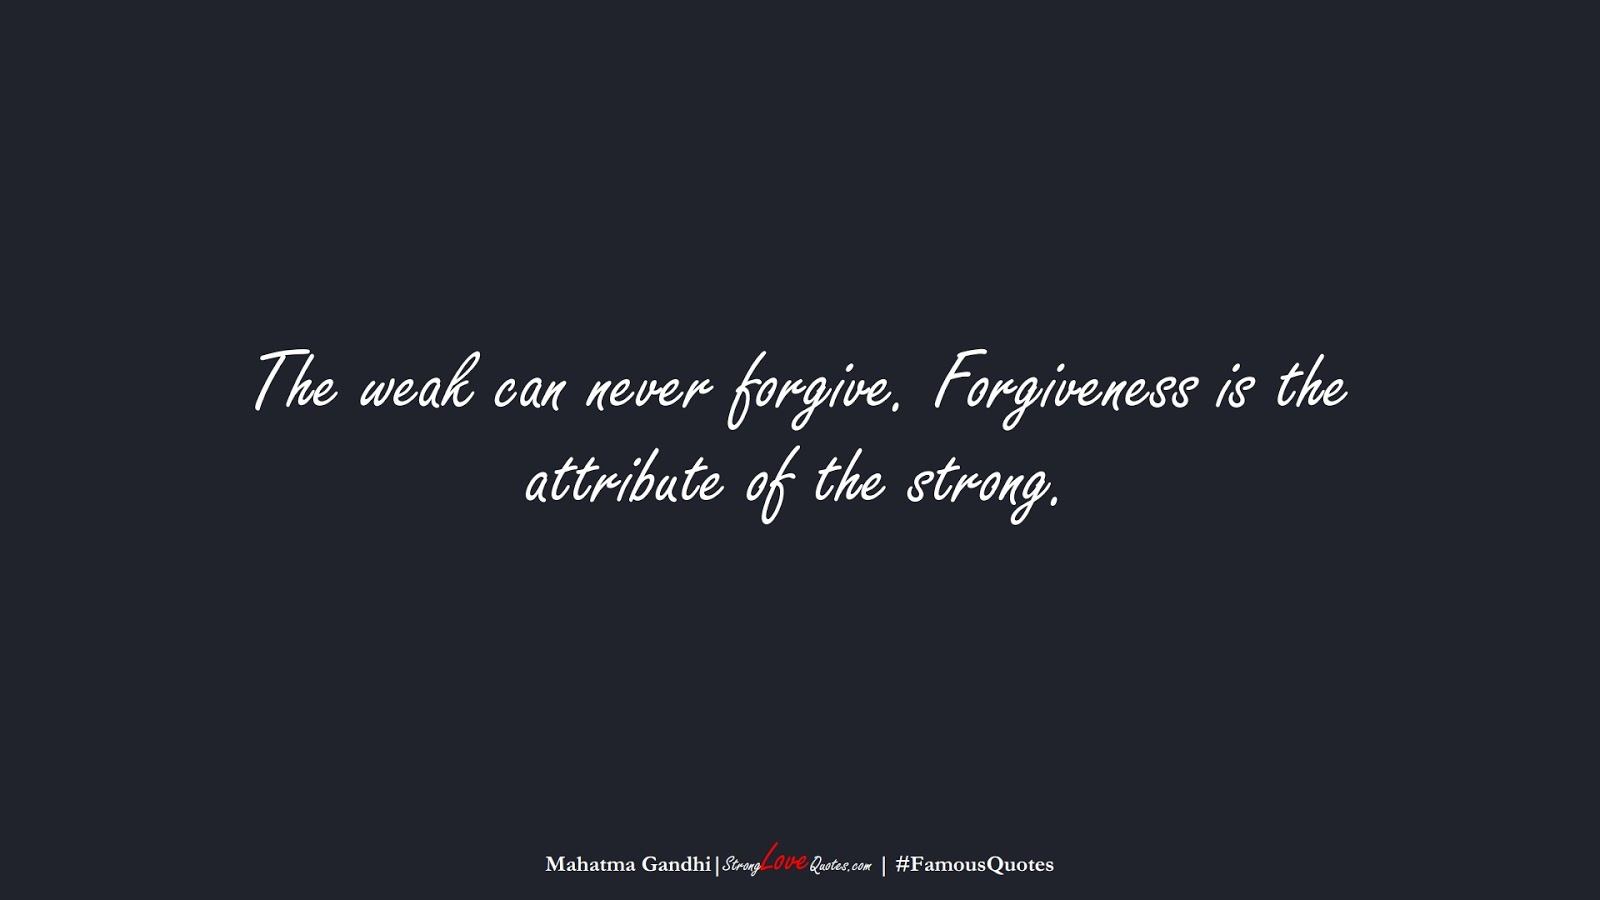 The weak can never forgive. Forgiveness is the attribute of the strong. (Mahatma Gandhi);  #FamousQuotes